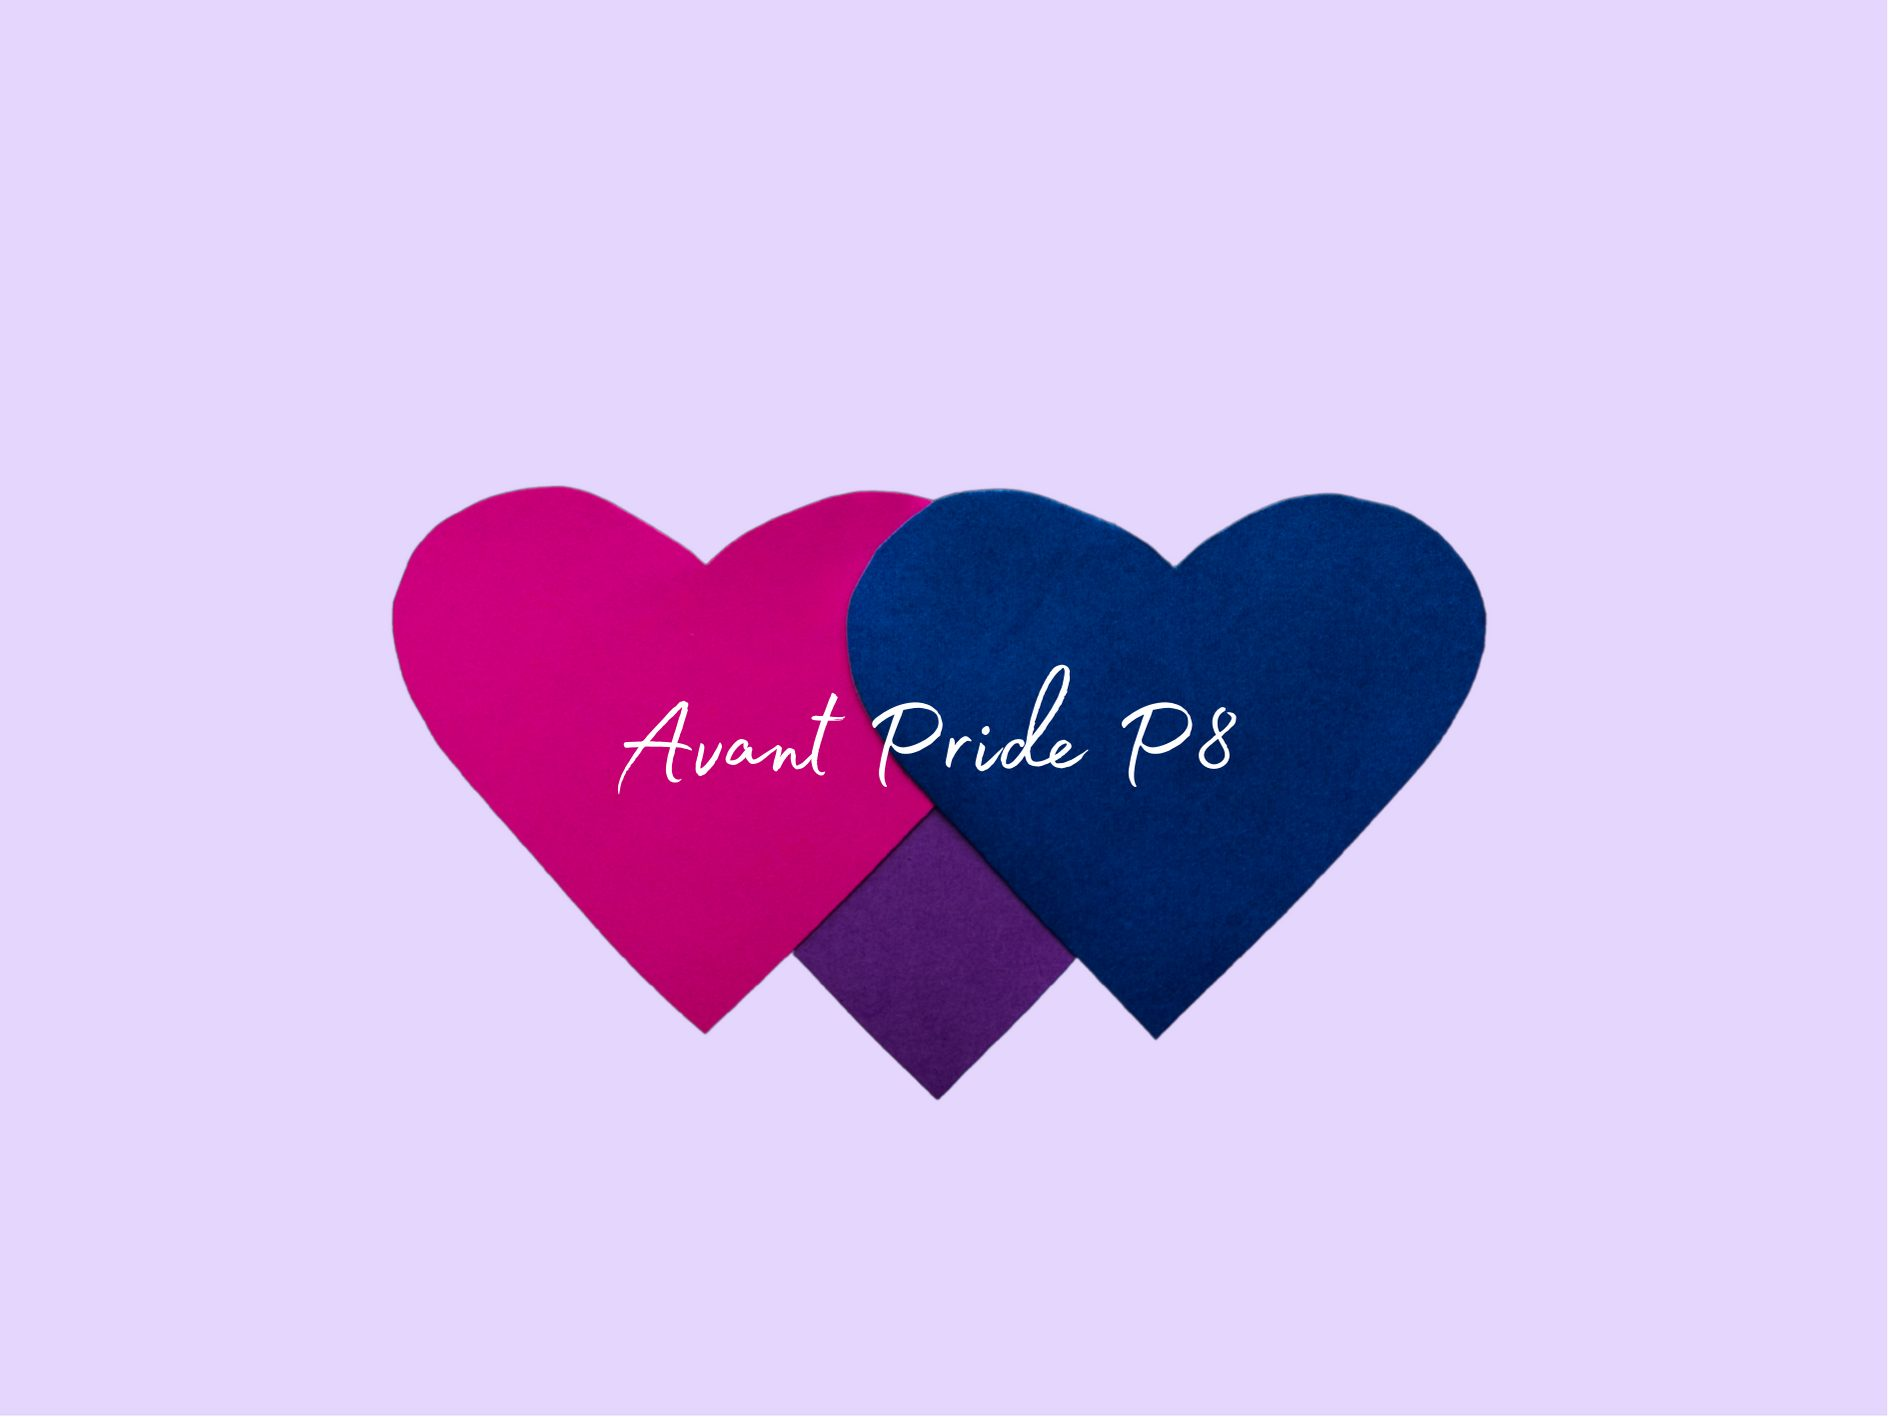 [Toy Review] Avant Pride P8 Bi Pride Dildo